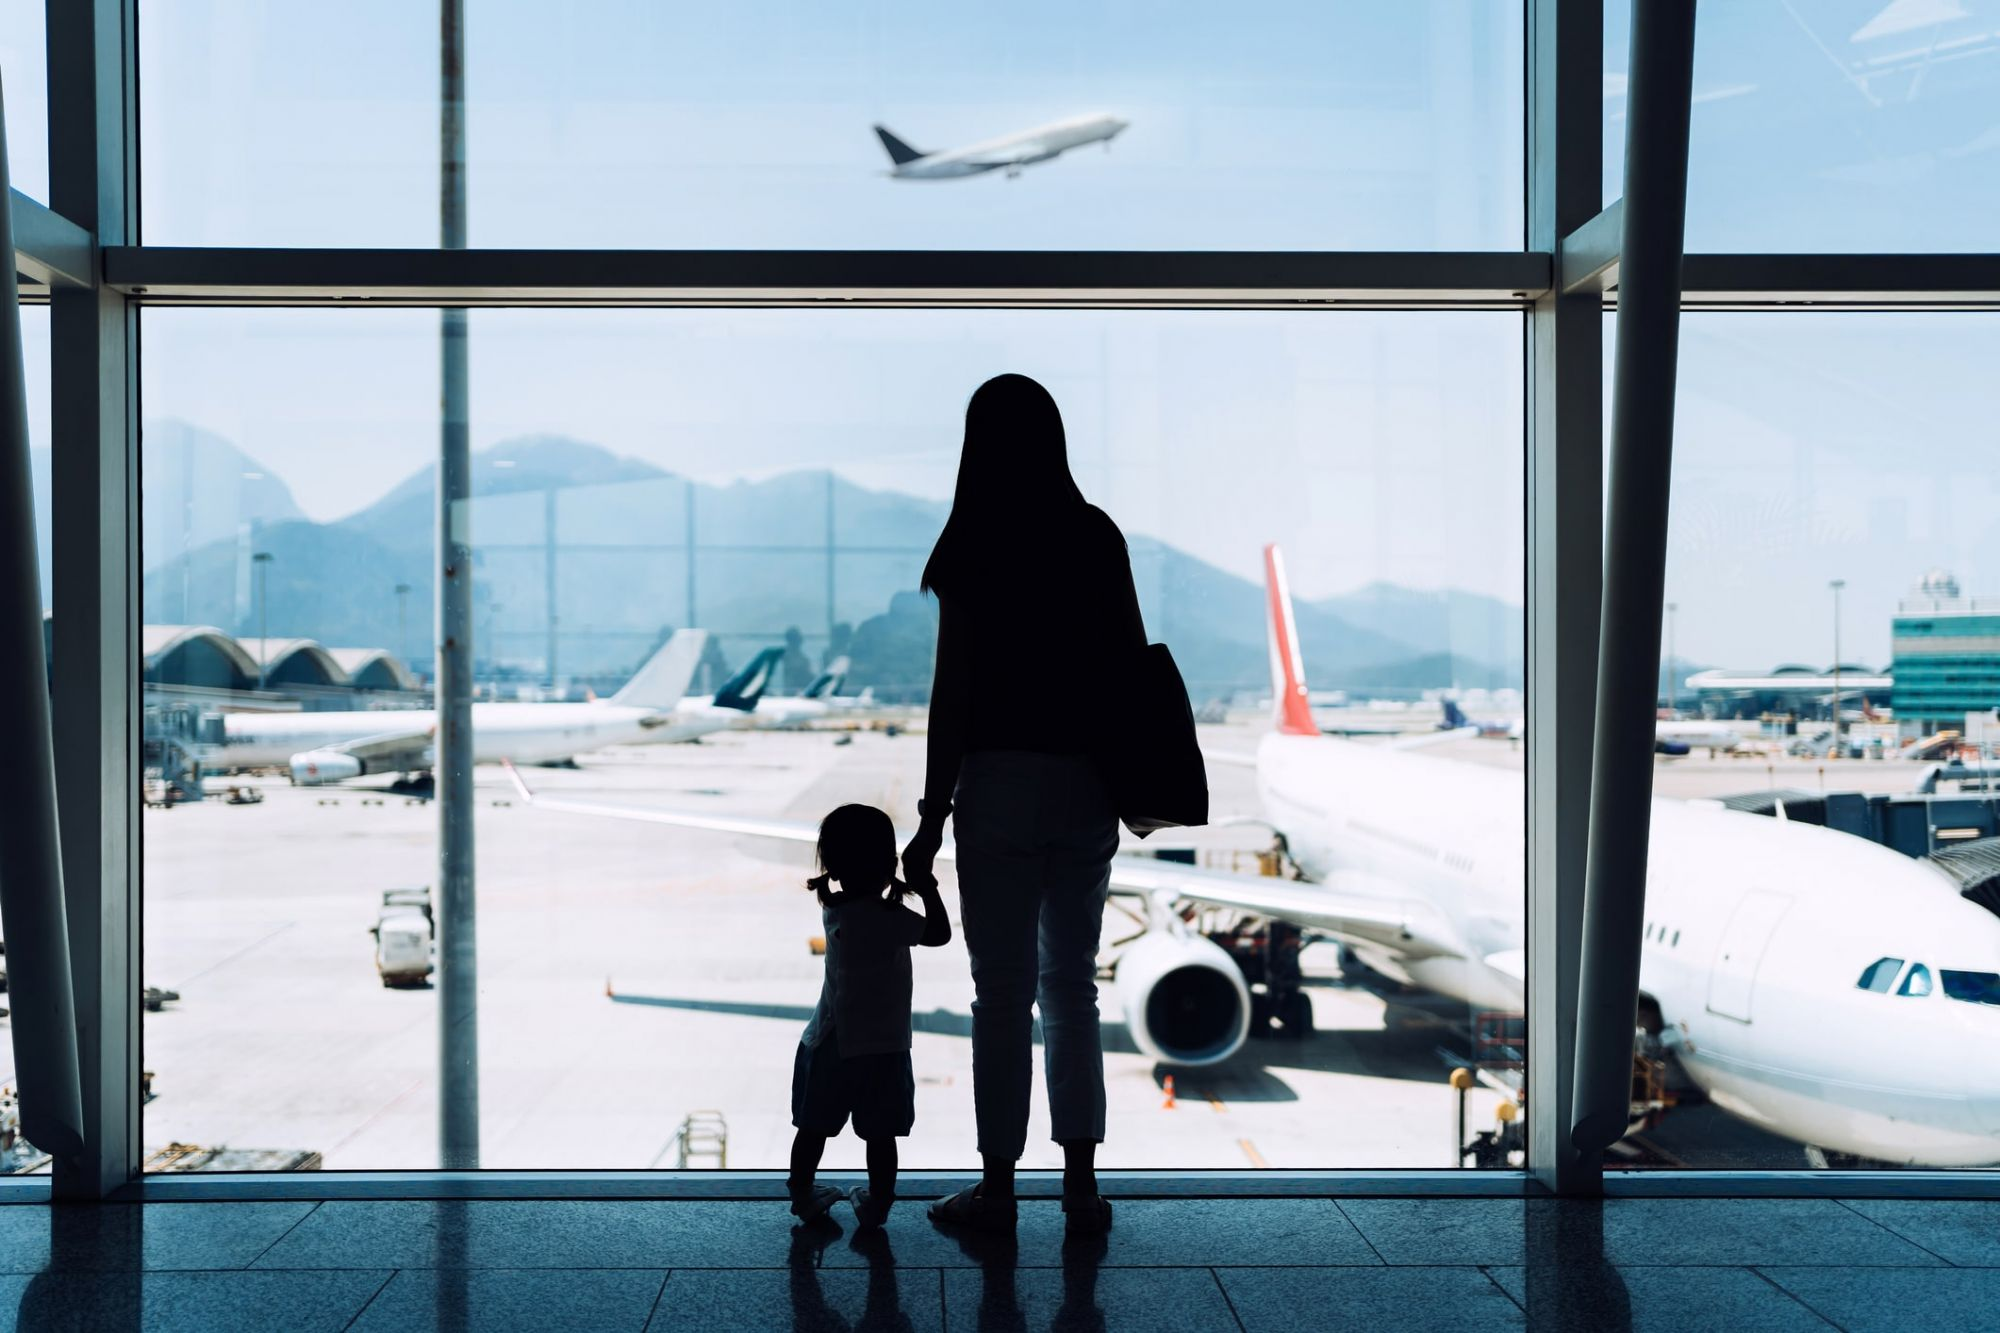 woman and child look out on hong kong airport plane taking off